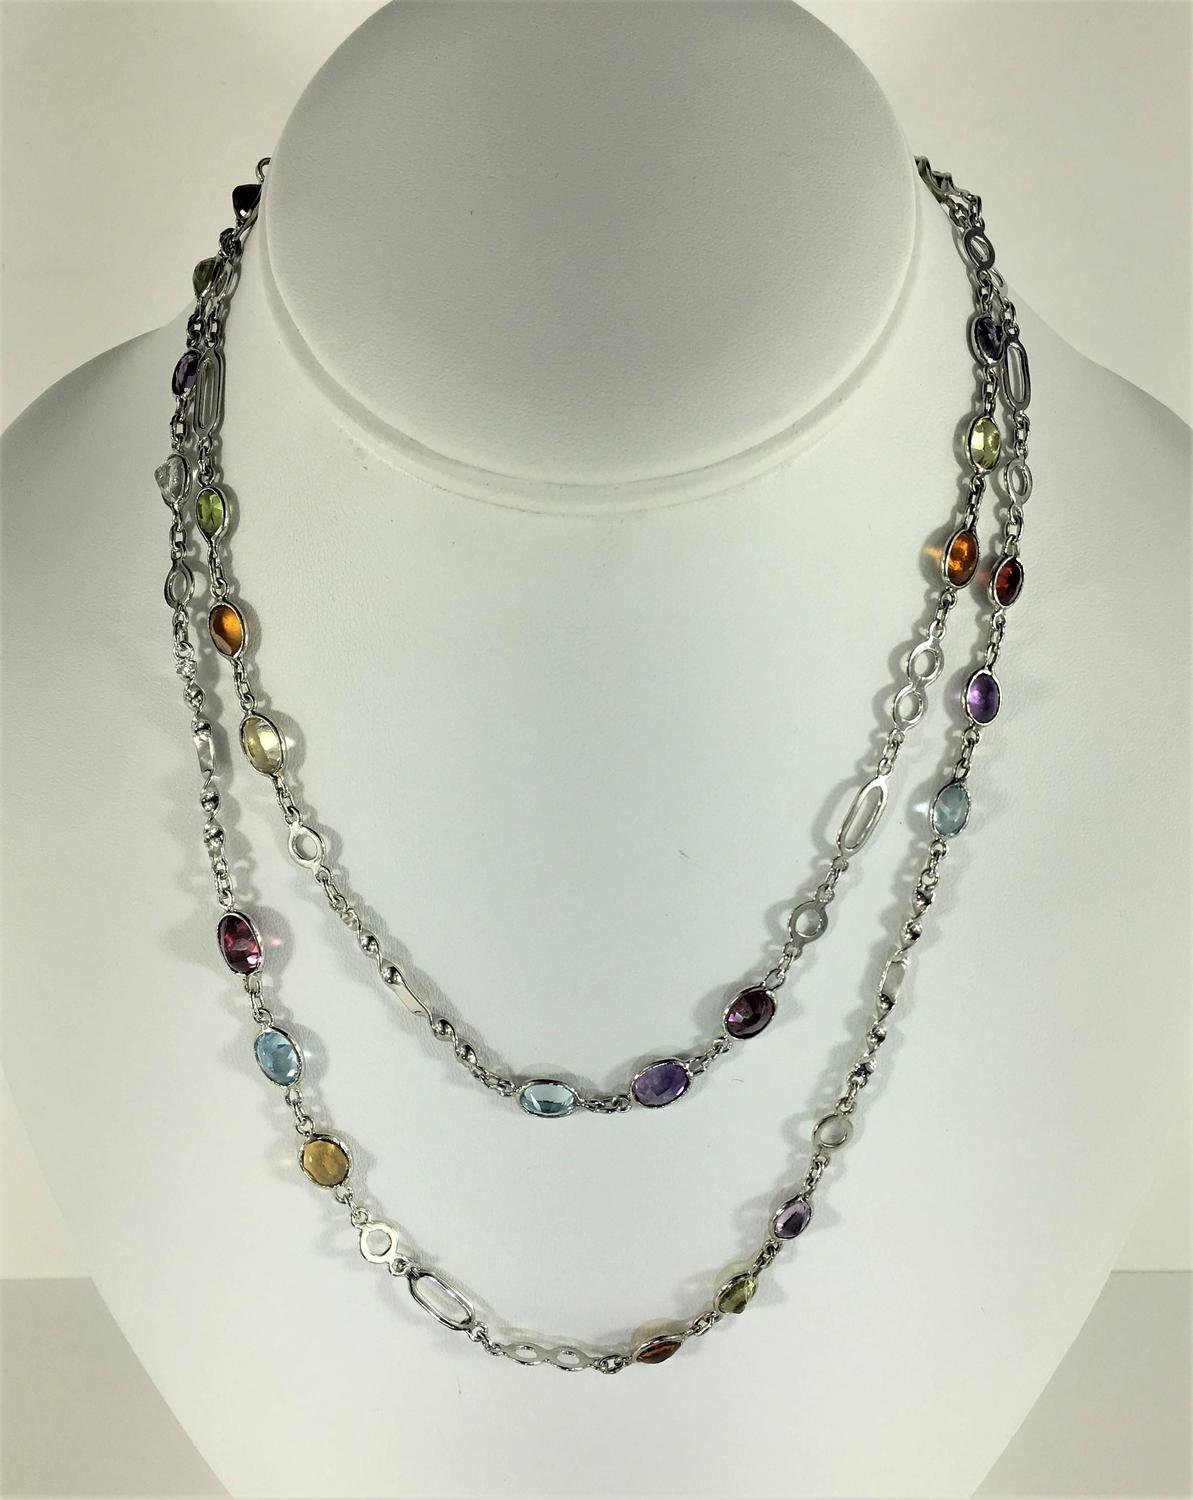 36 inch sterling silver chain with oval gemstones necklace for sale at